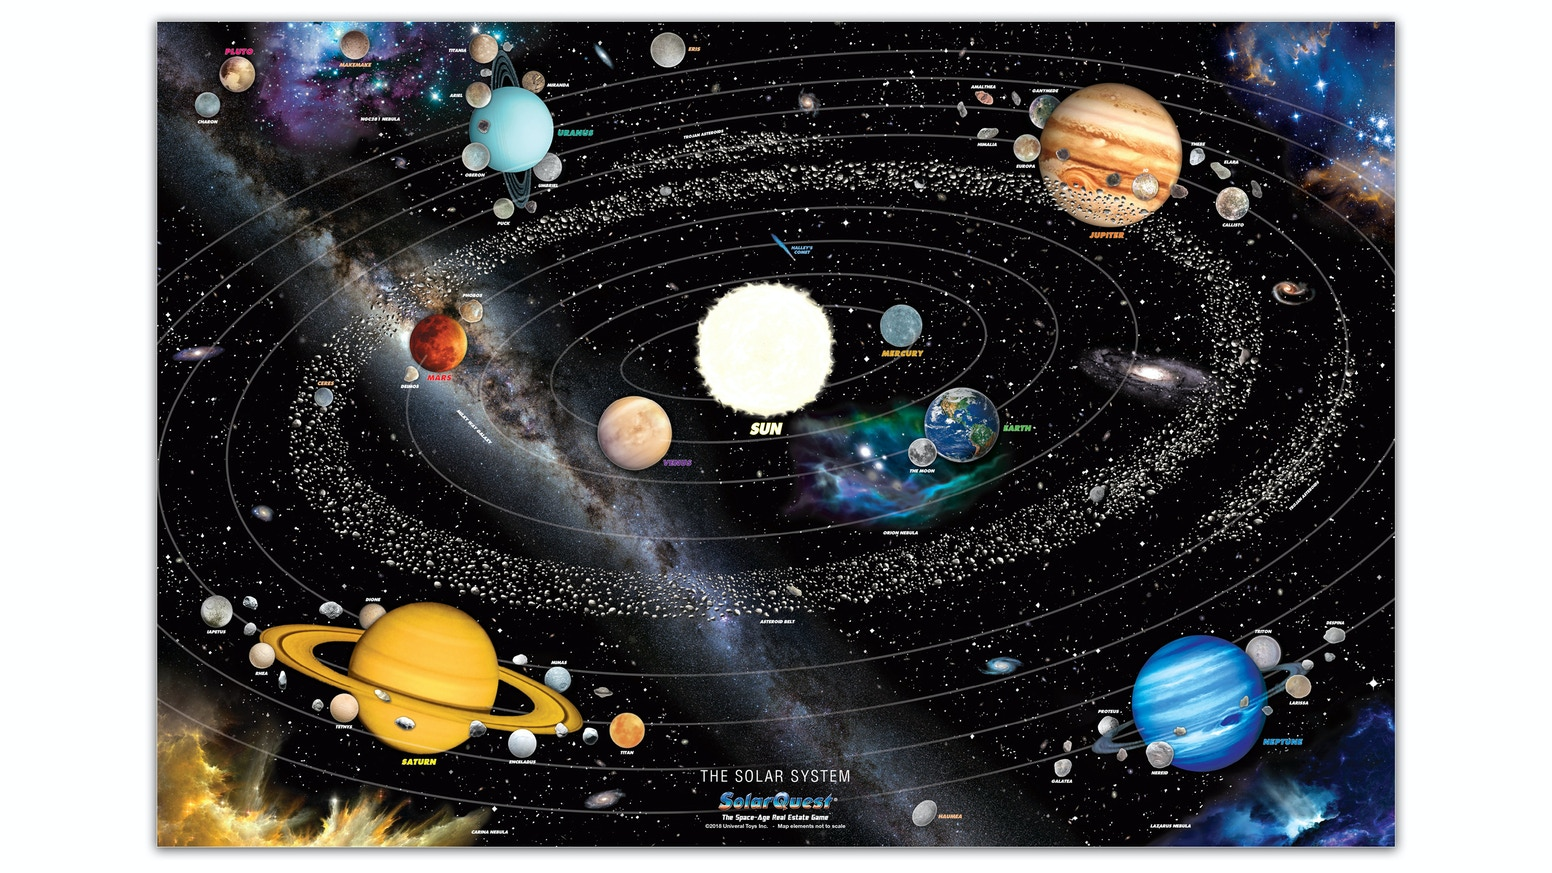 THE SOLAR SYSTEM, a comprehensive map by Valen Brost ...